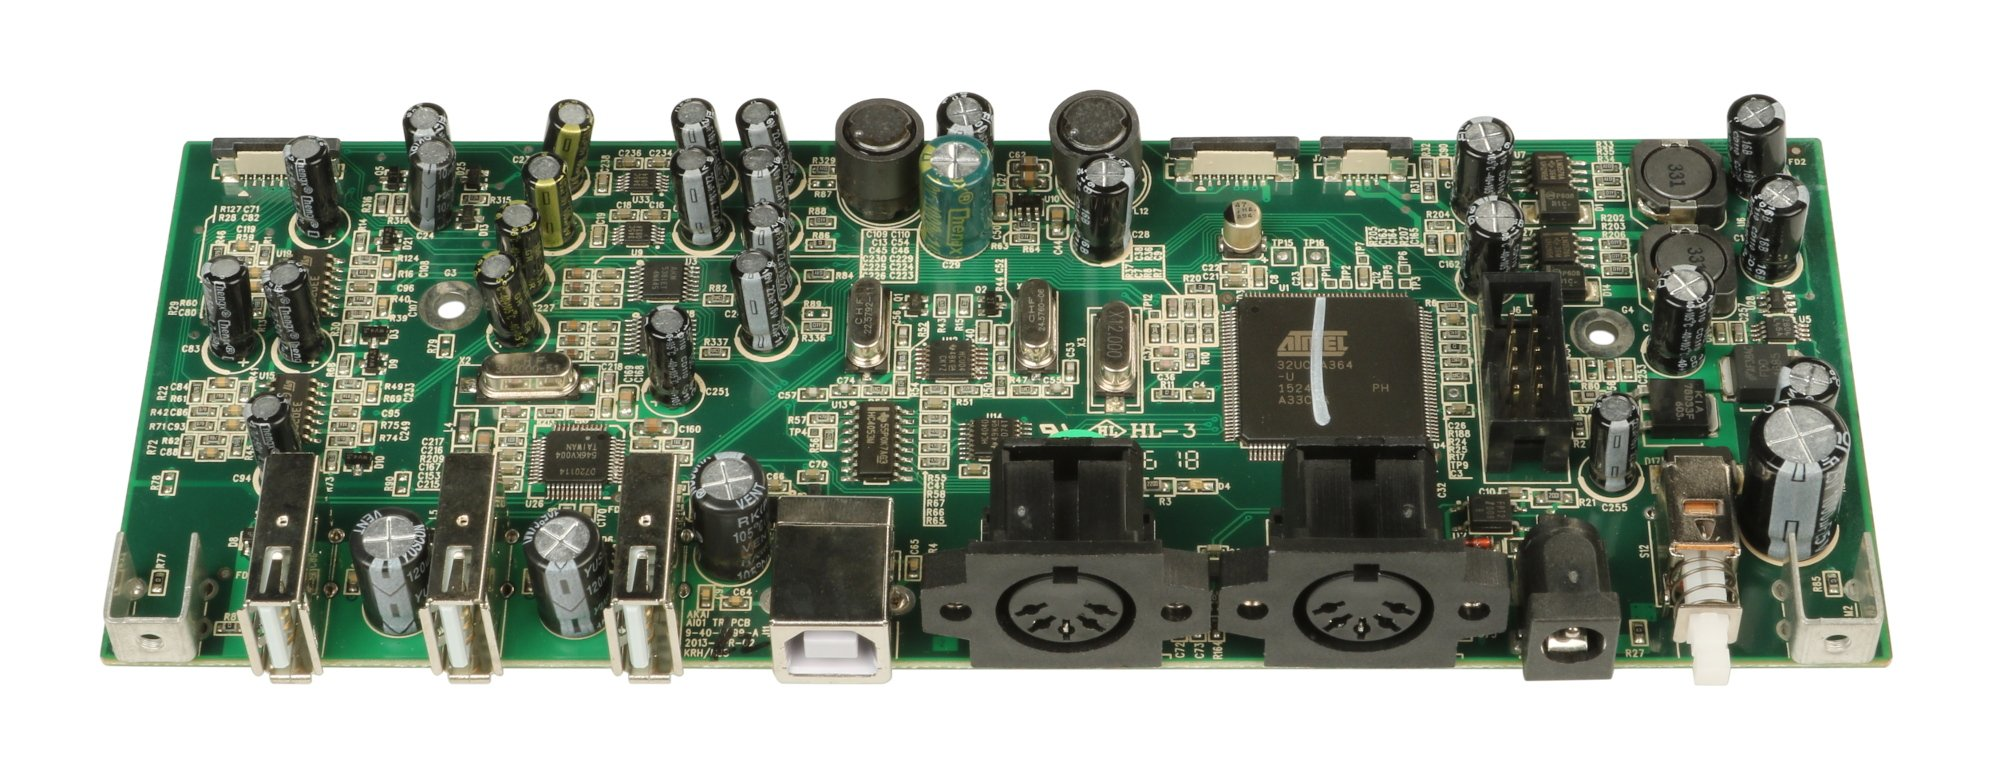 Top PCB Assembly with USB Jacks for EIE PRO